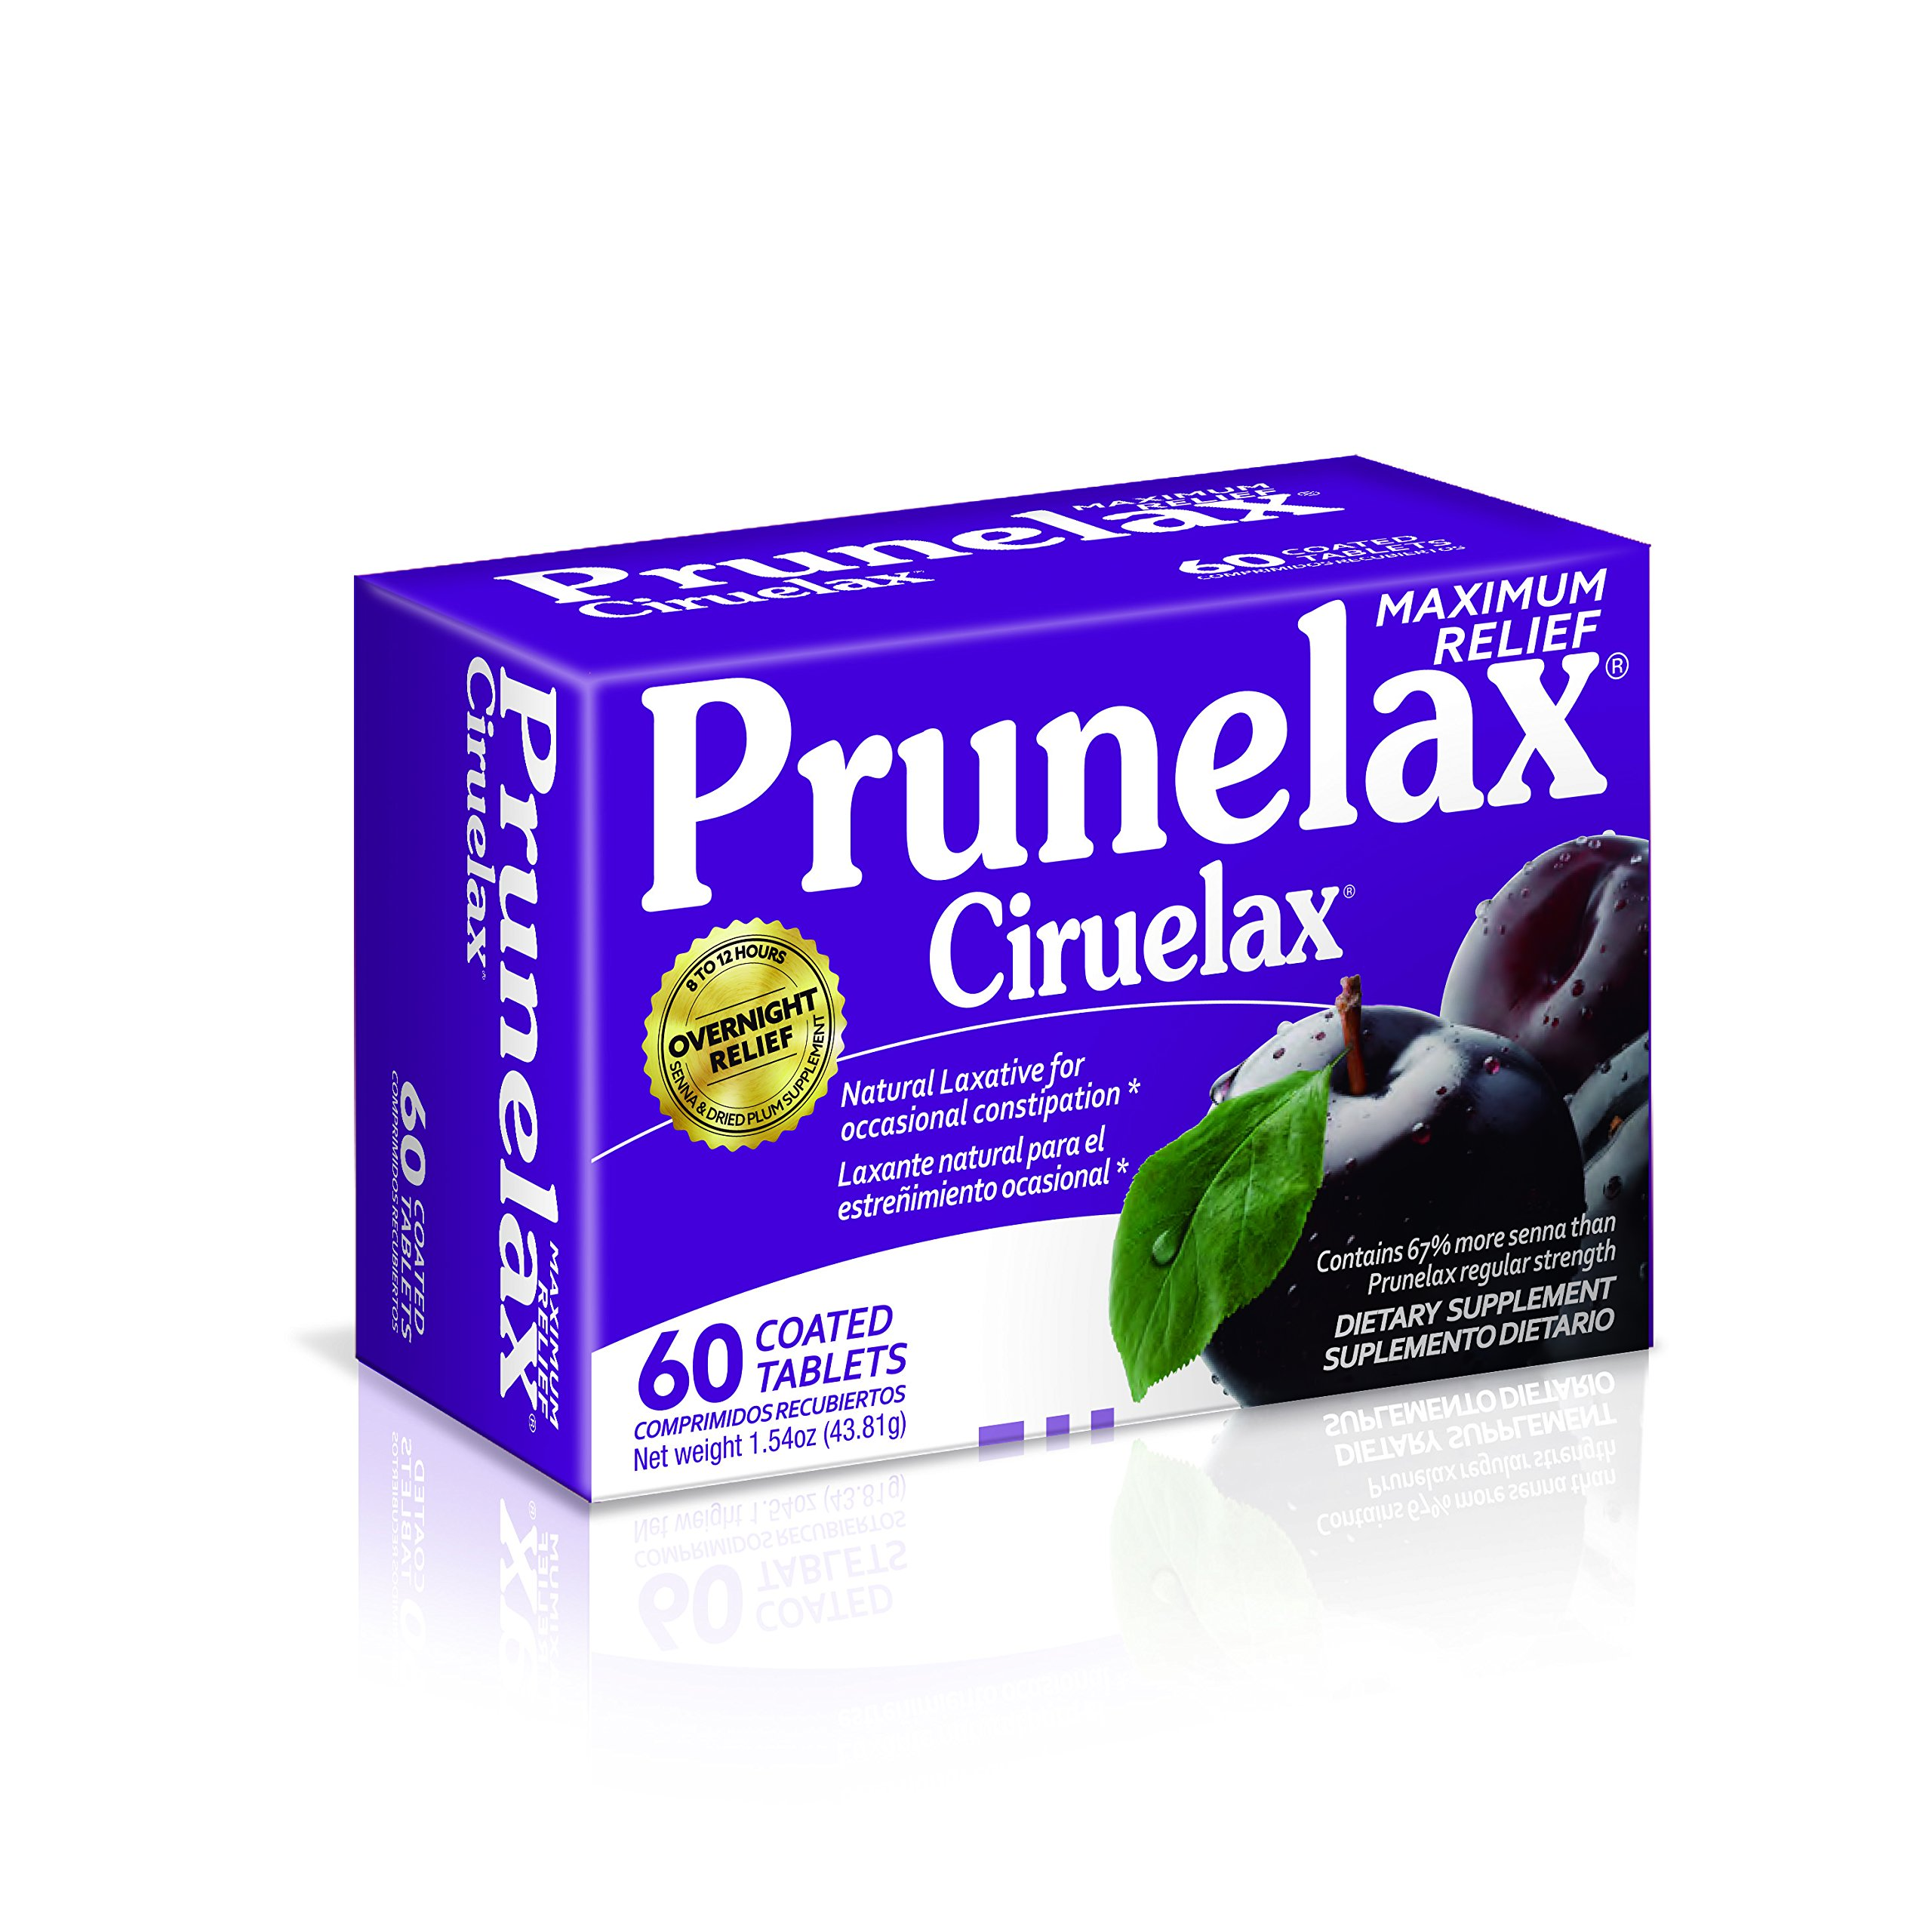 Prunelax Extra Strength Capsules, 60 Count (Pack of 6)